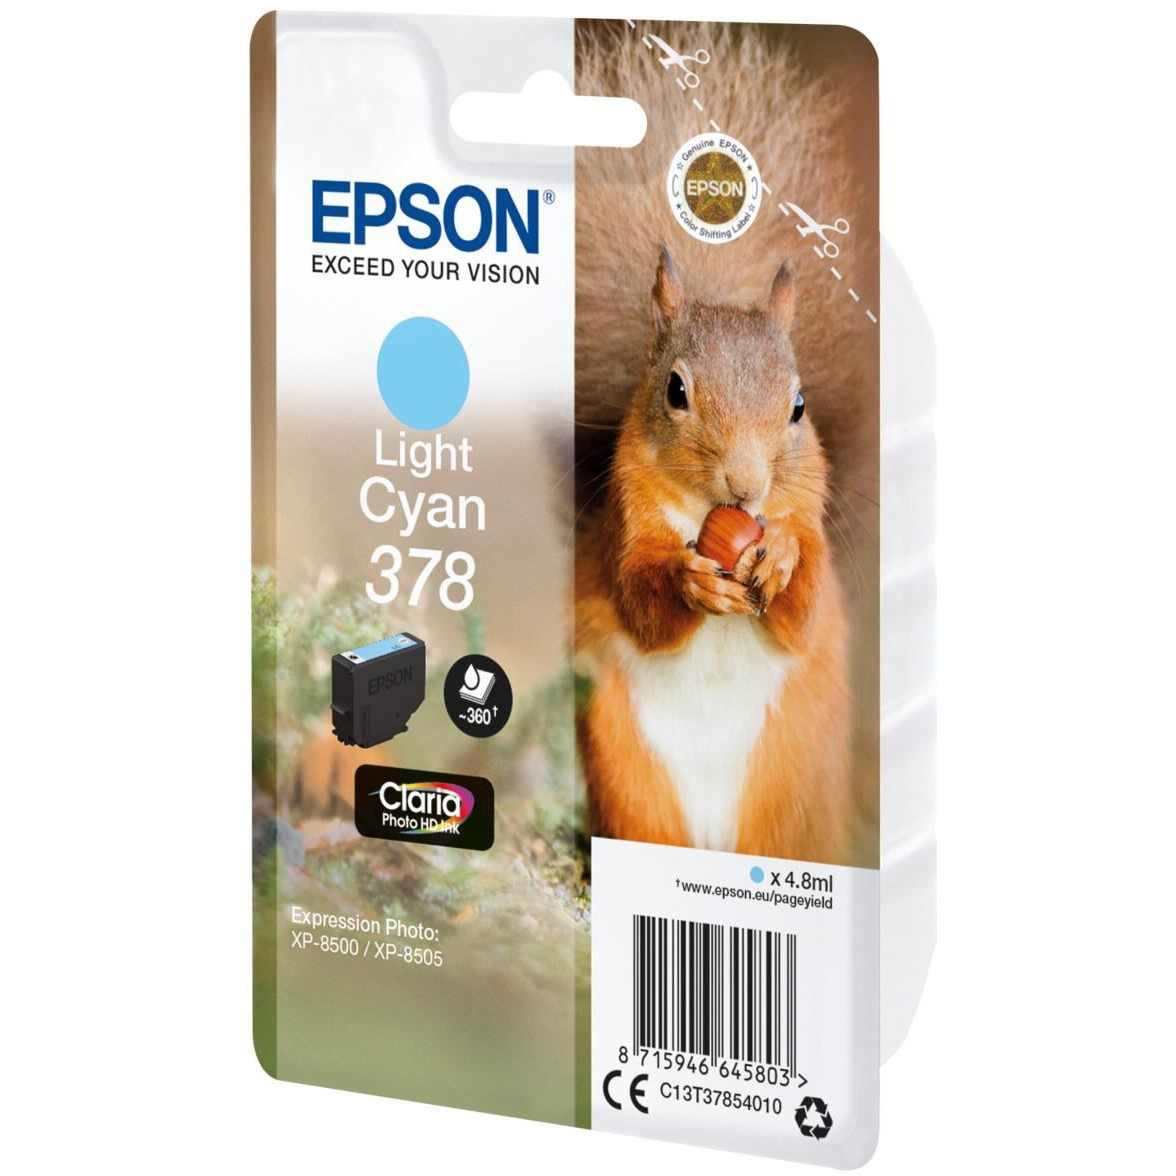 Original Epson 378 Light Cyan Ink Cartridge (C13T37854010)